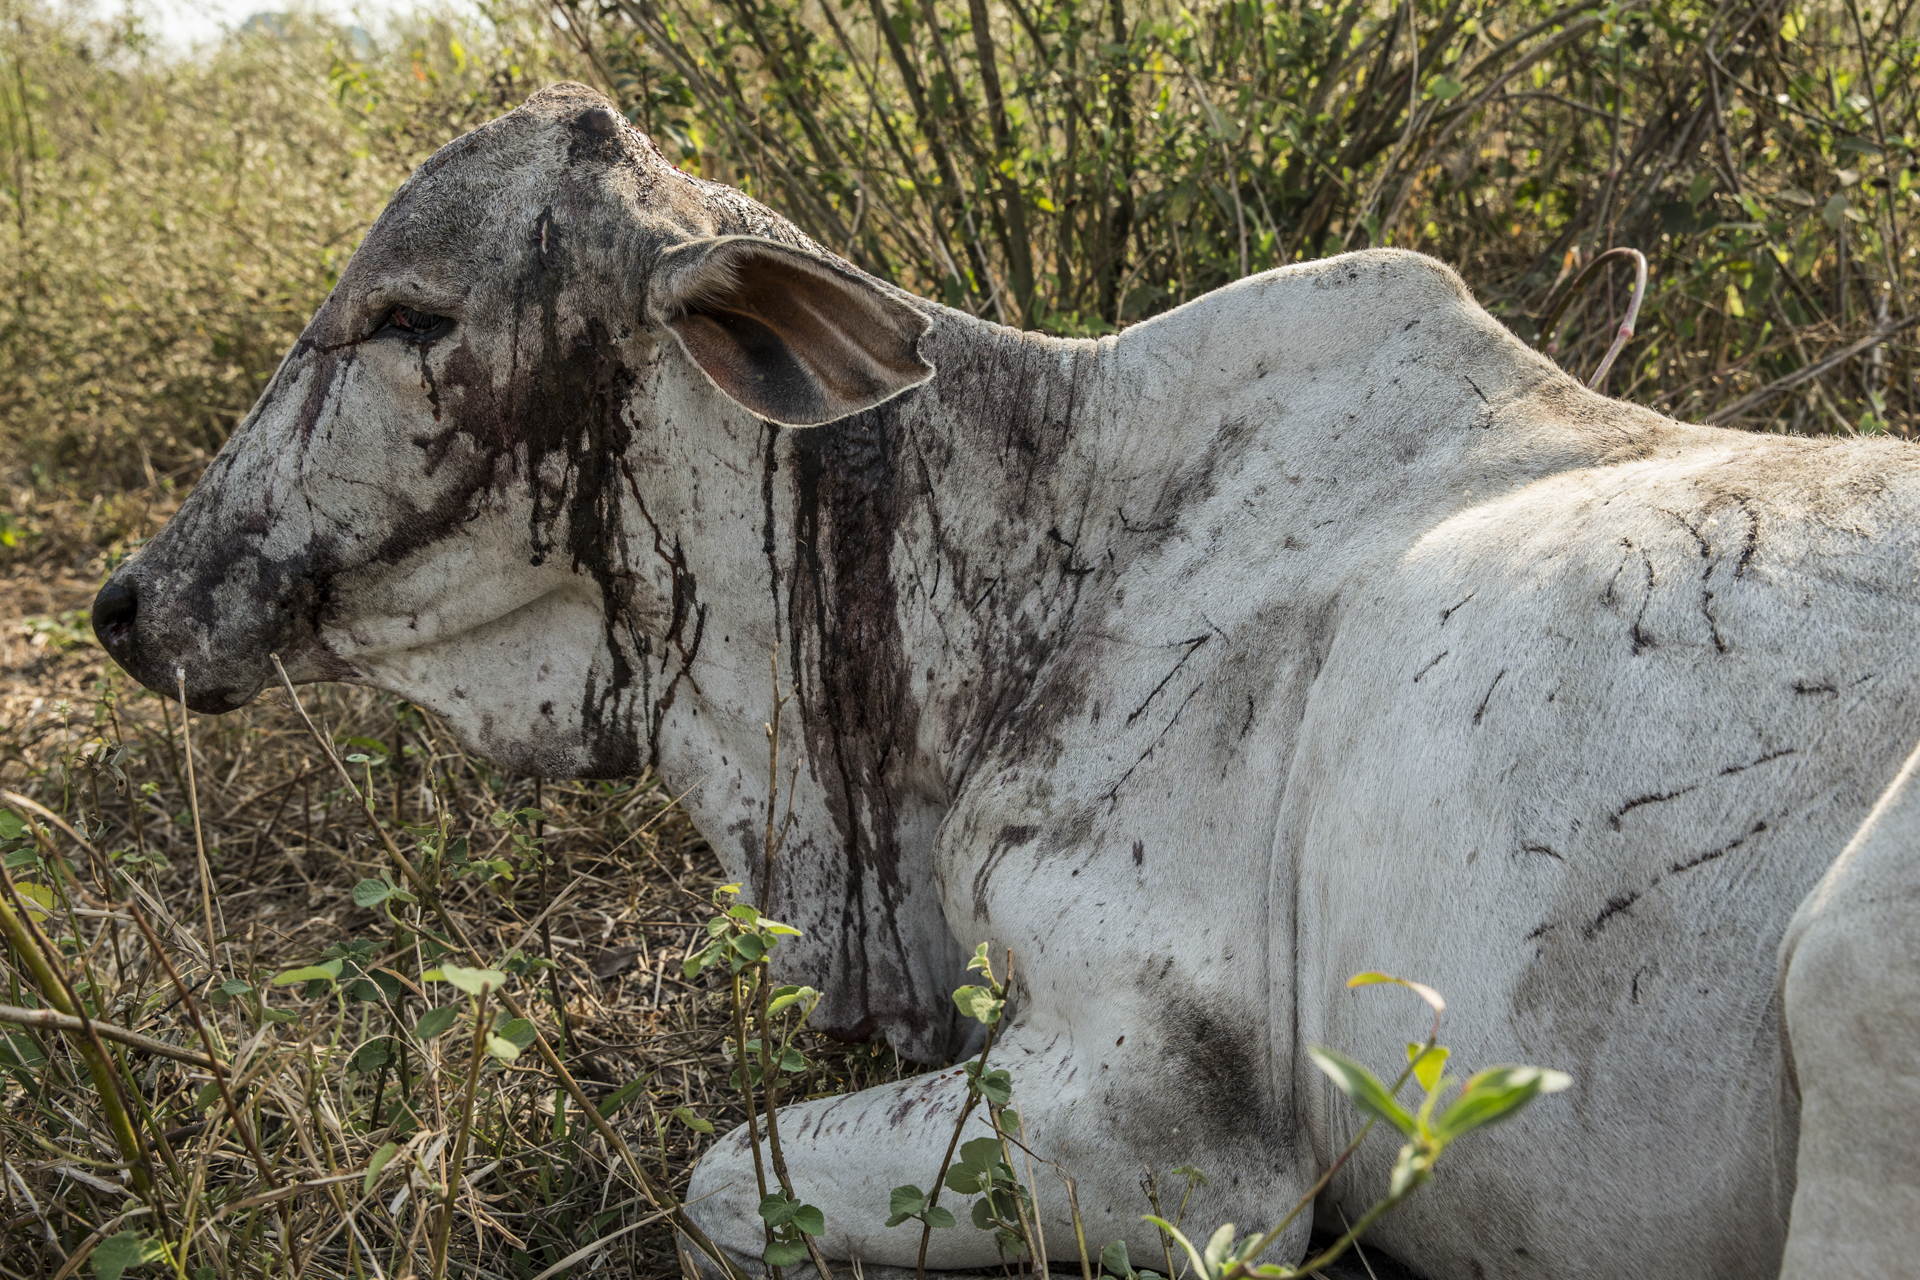 A cow, miraculously still alive after a jaguar attack.